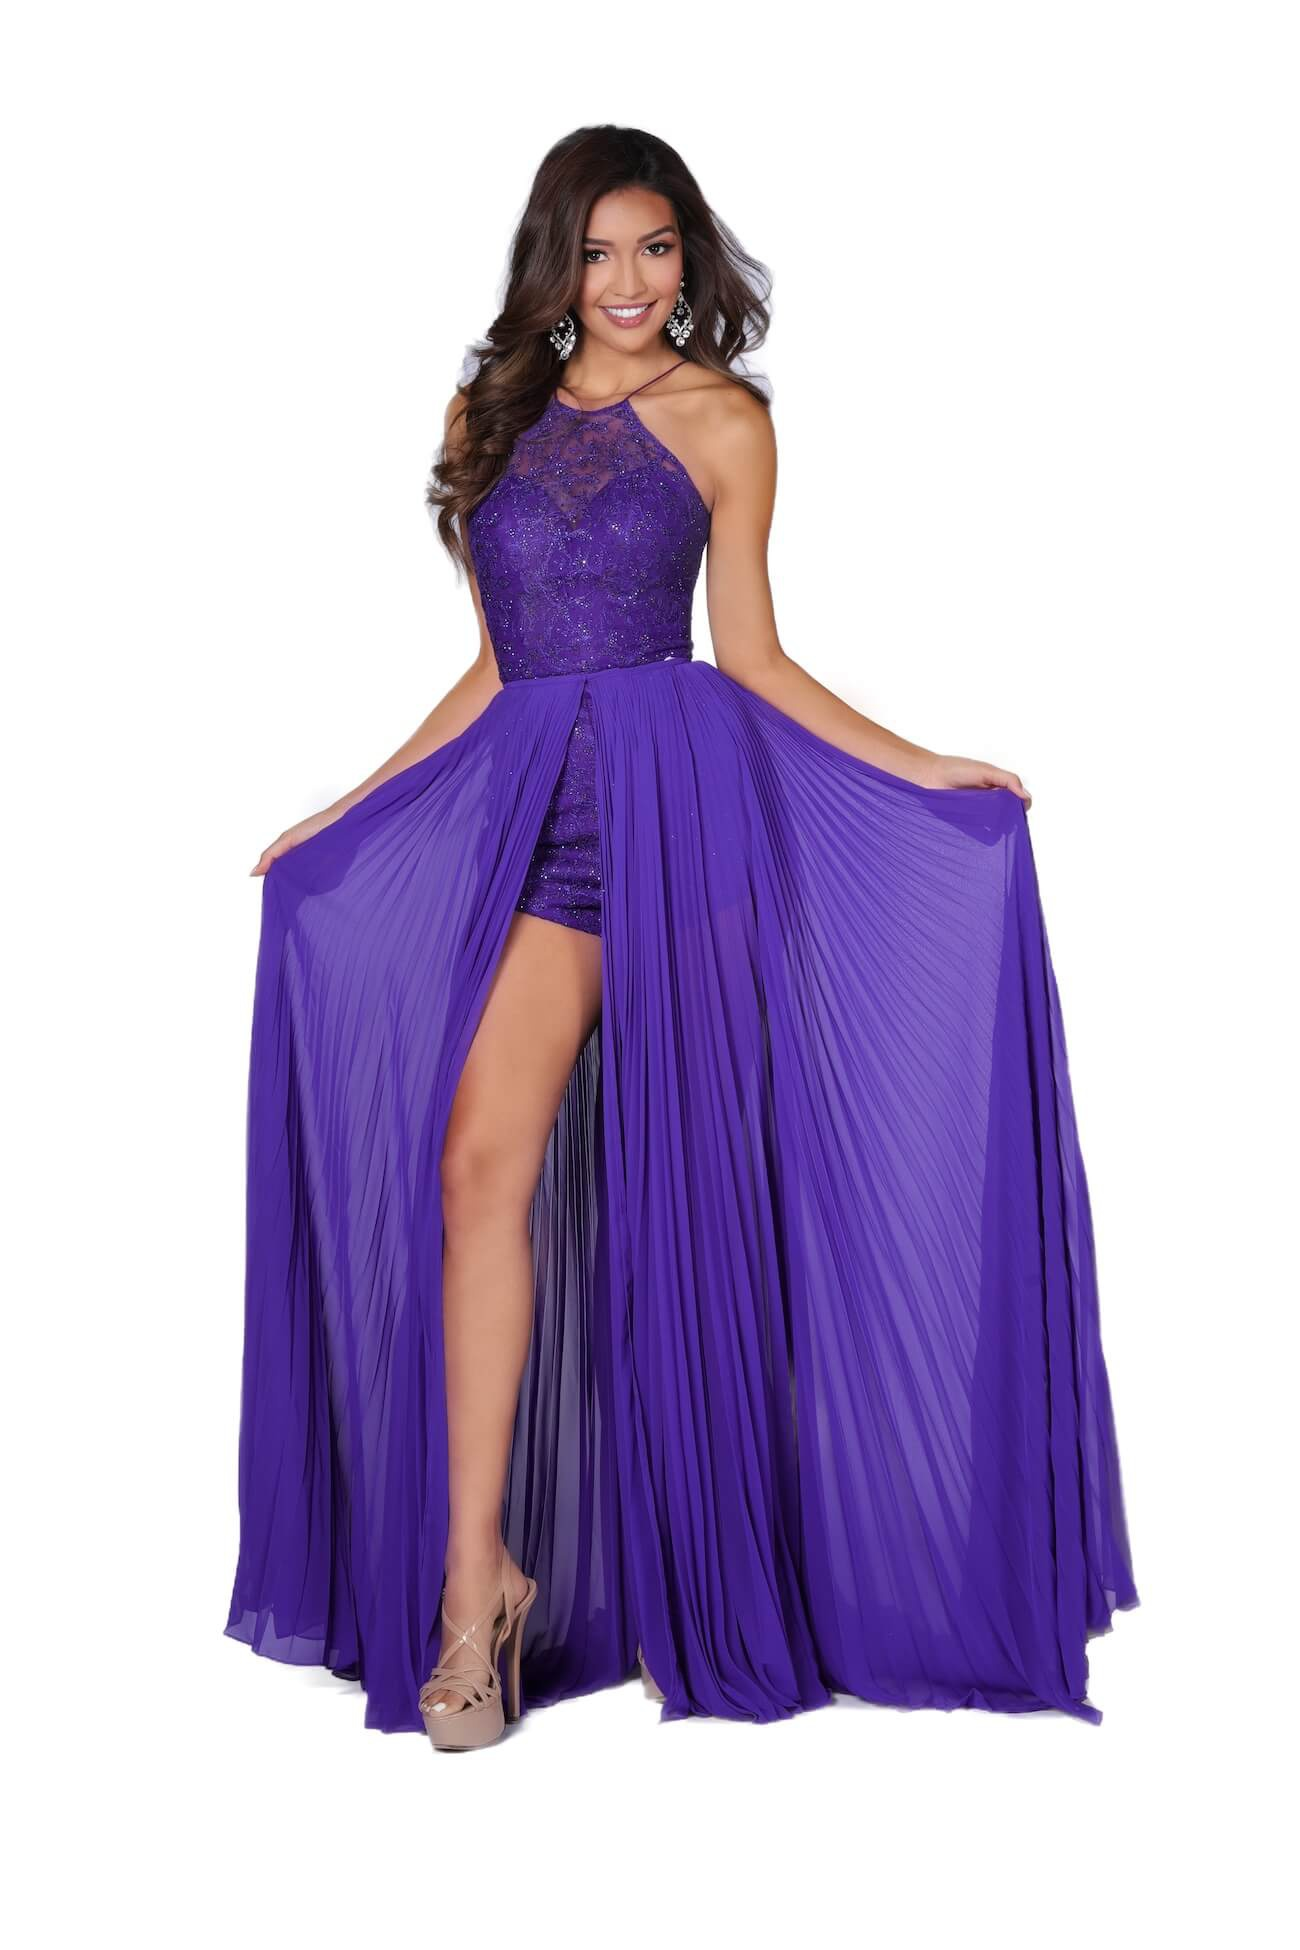 Vienna Purple Size 12 Tall Height Overskirt Romper/Jumpsuit Dress on Queenly